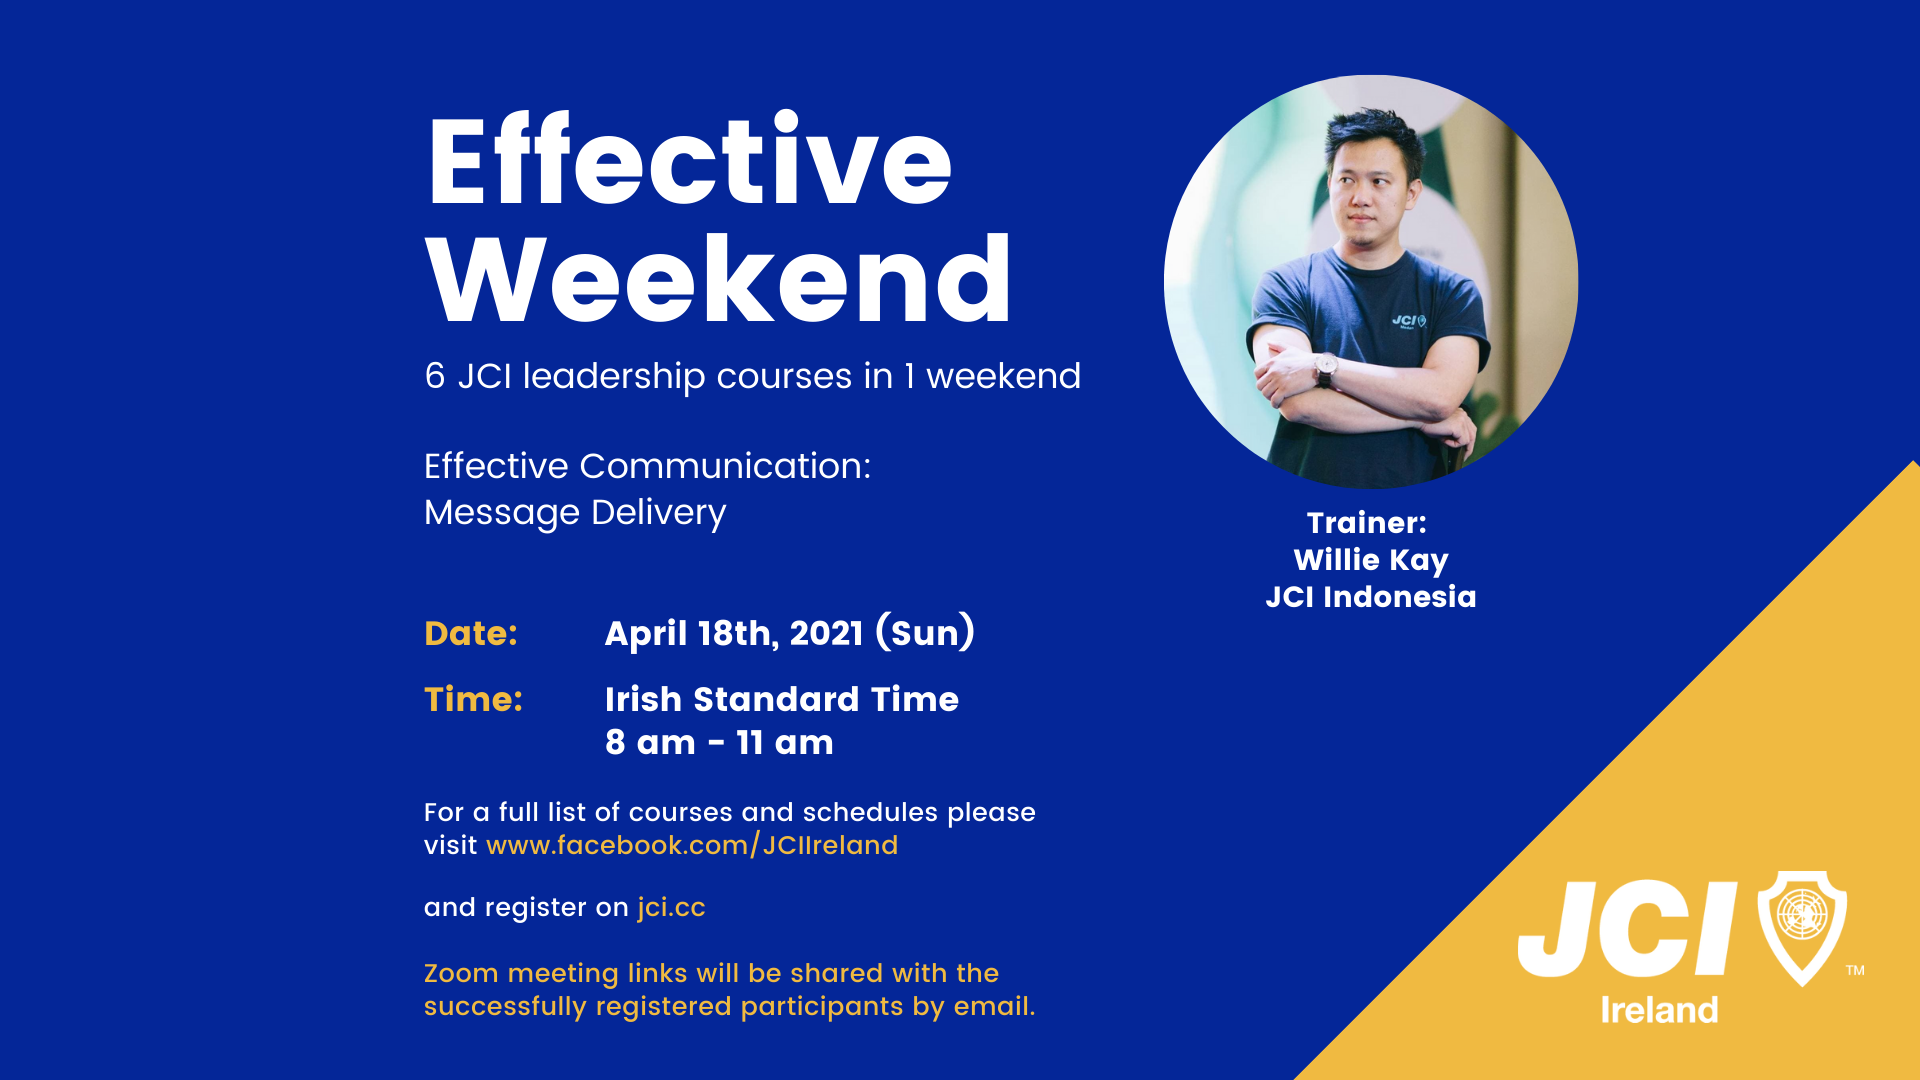 Effective Weekend 2021 - Effective Communication: Message Delivery